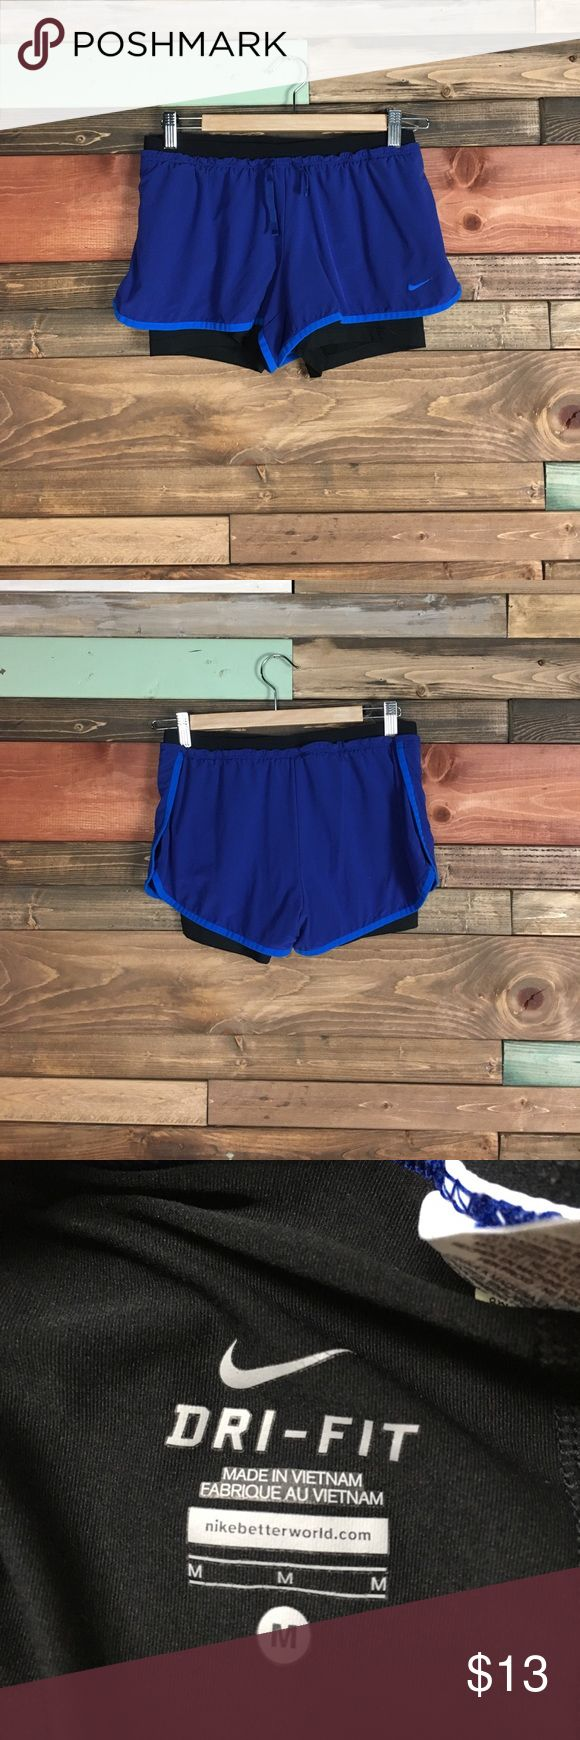 Nike Dry Fit Blue Athletic Shorts with Pockets M Nike Dry Fit Blue Athletic Shorts with Pockets M perfect condition. Worn only a couple times. Hidden Pockets are on both sides of the shorts Nike Shorts